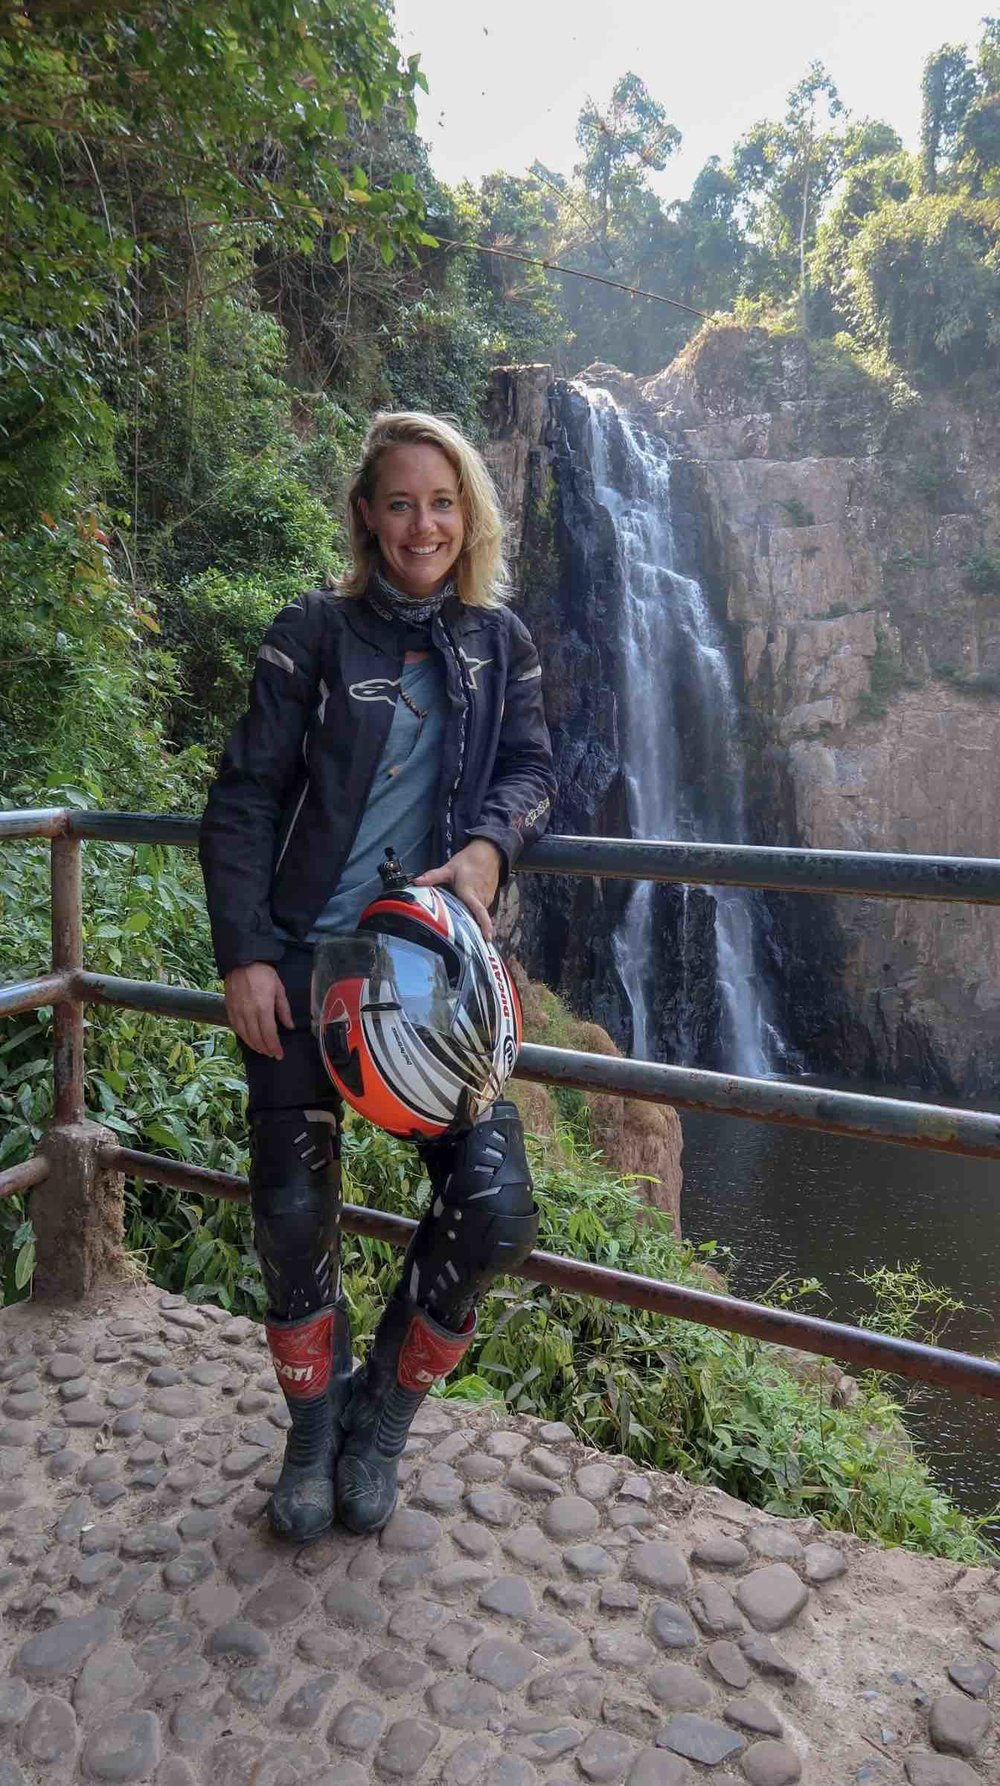 Hiking to the Haew narok waterfall in full riding gear…